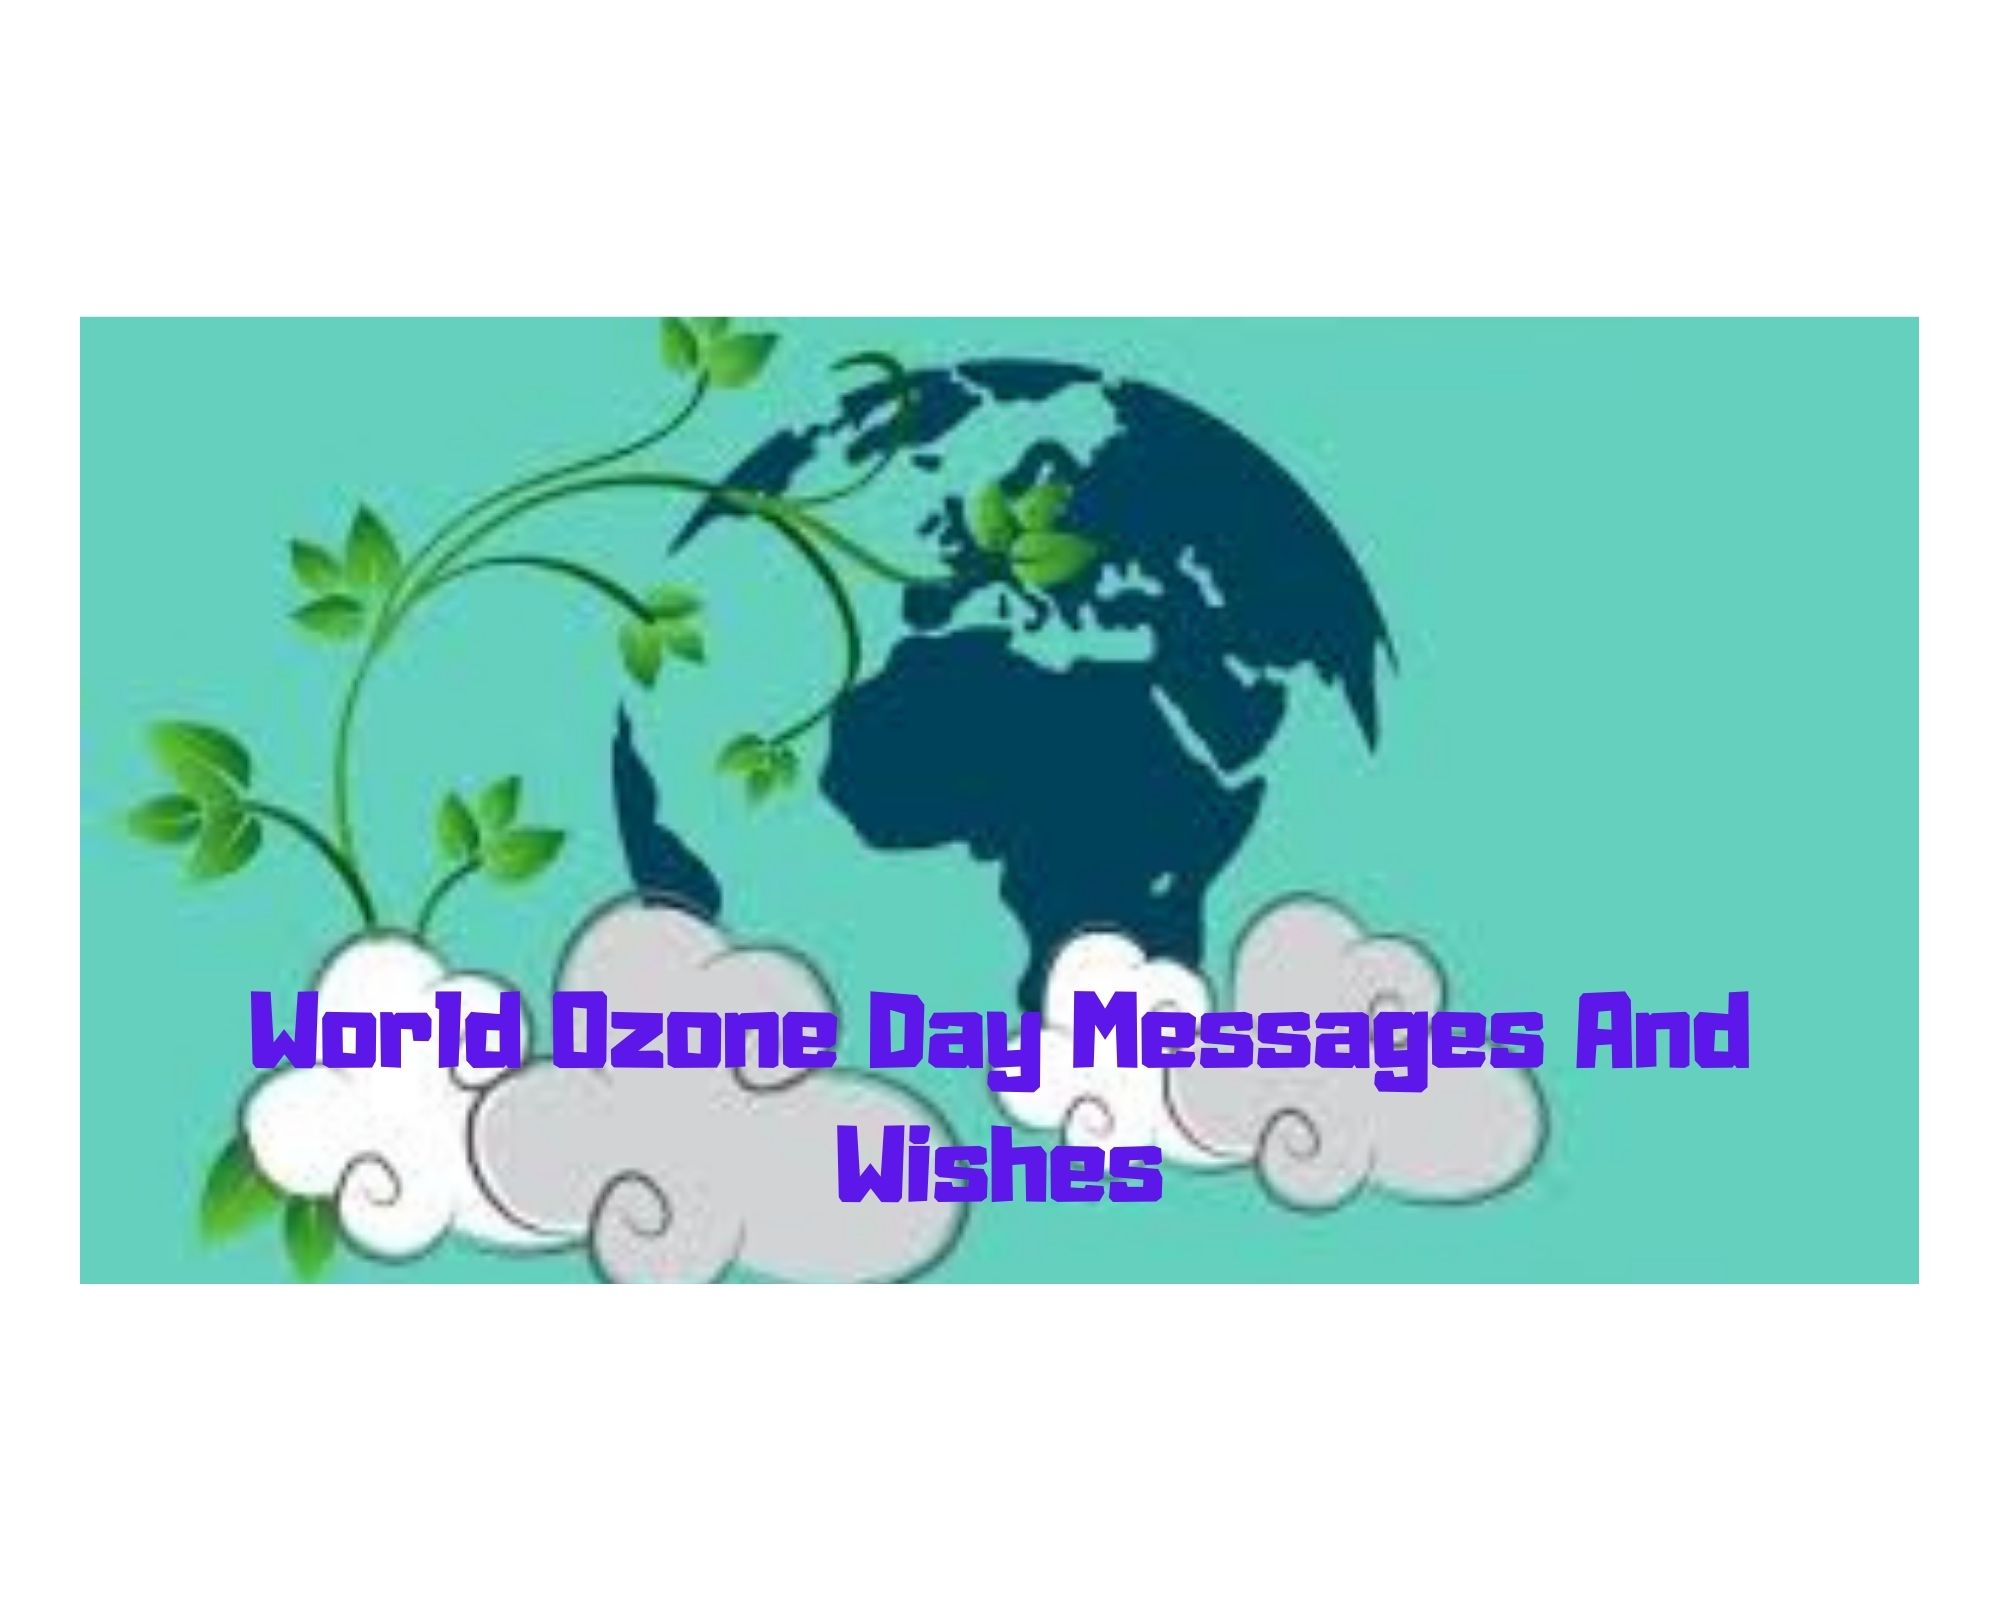 World Ozone Day Messages And Wishes